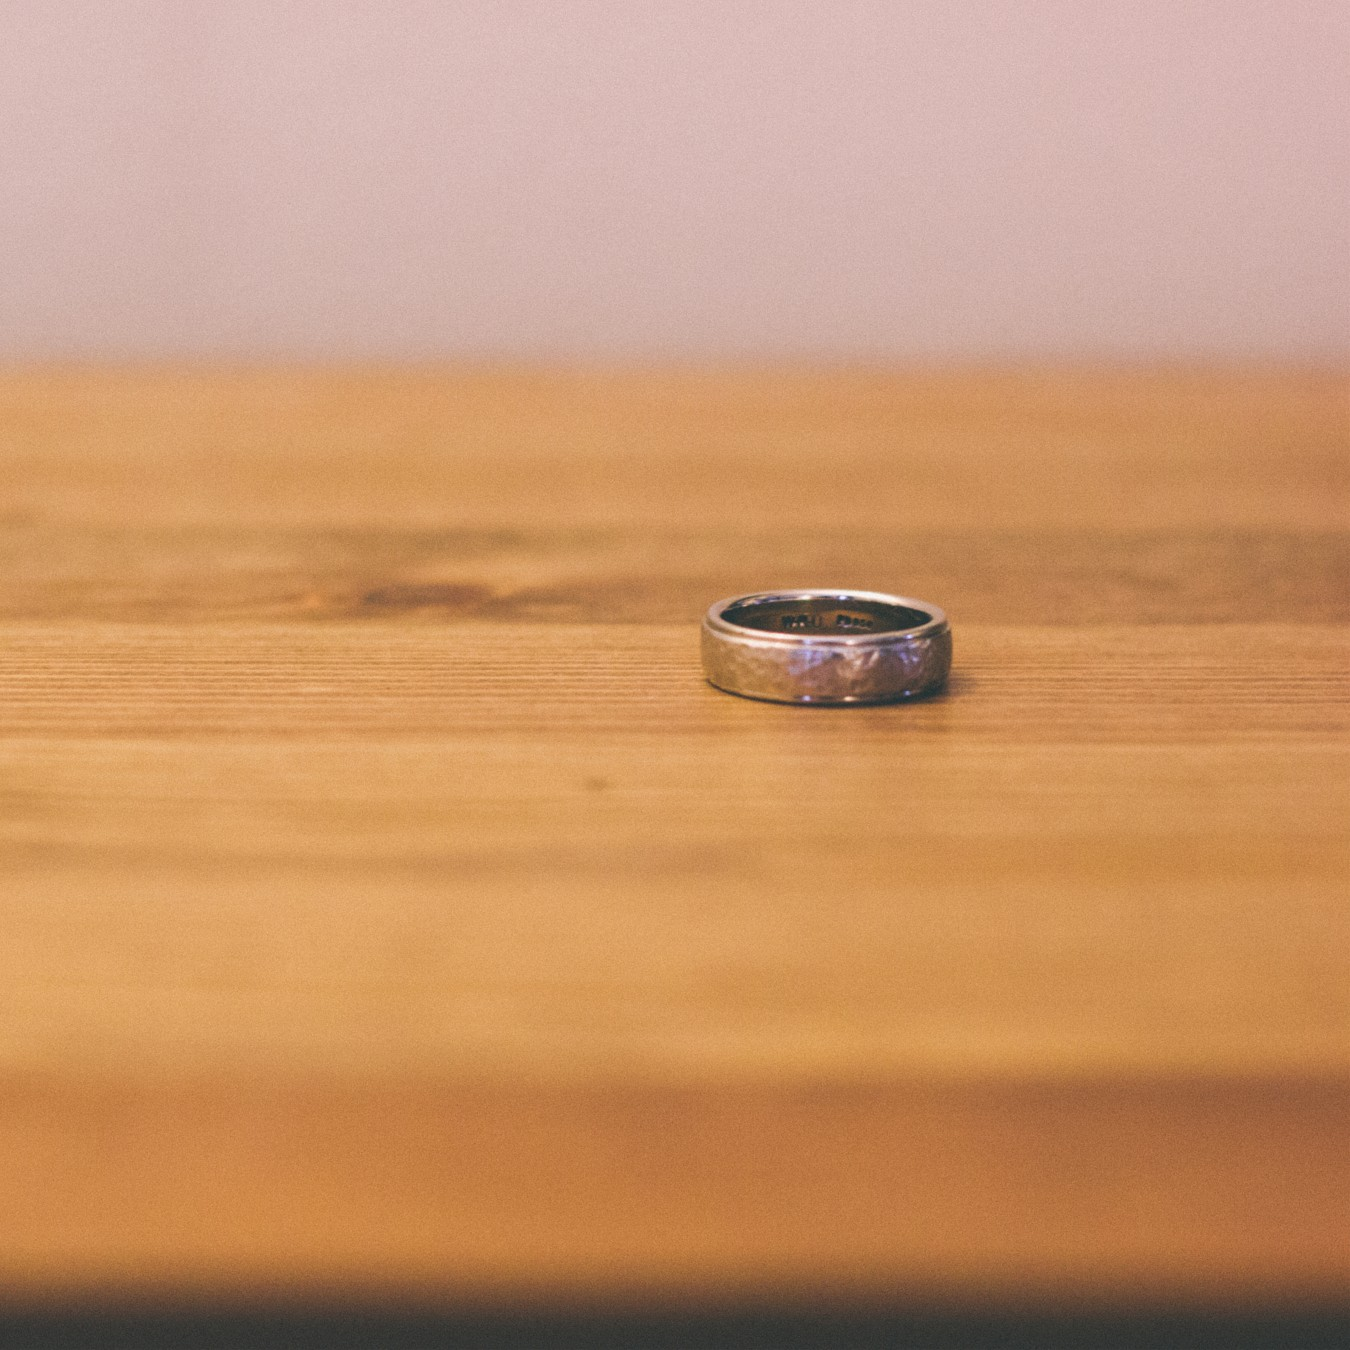 Positive Circles specializes in professional counselling, psychotherapy, mental health and support services for the whole family. Serving the greater Toronto, Canada area. Picture of a single wedding band depicting divorce, separation, lonliness. www.positivecircles.com